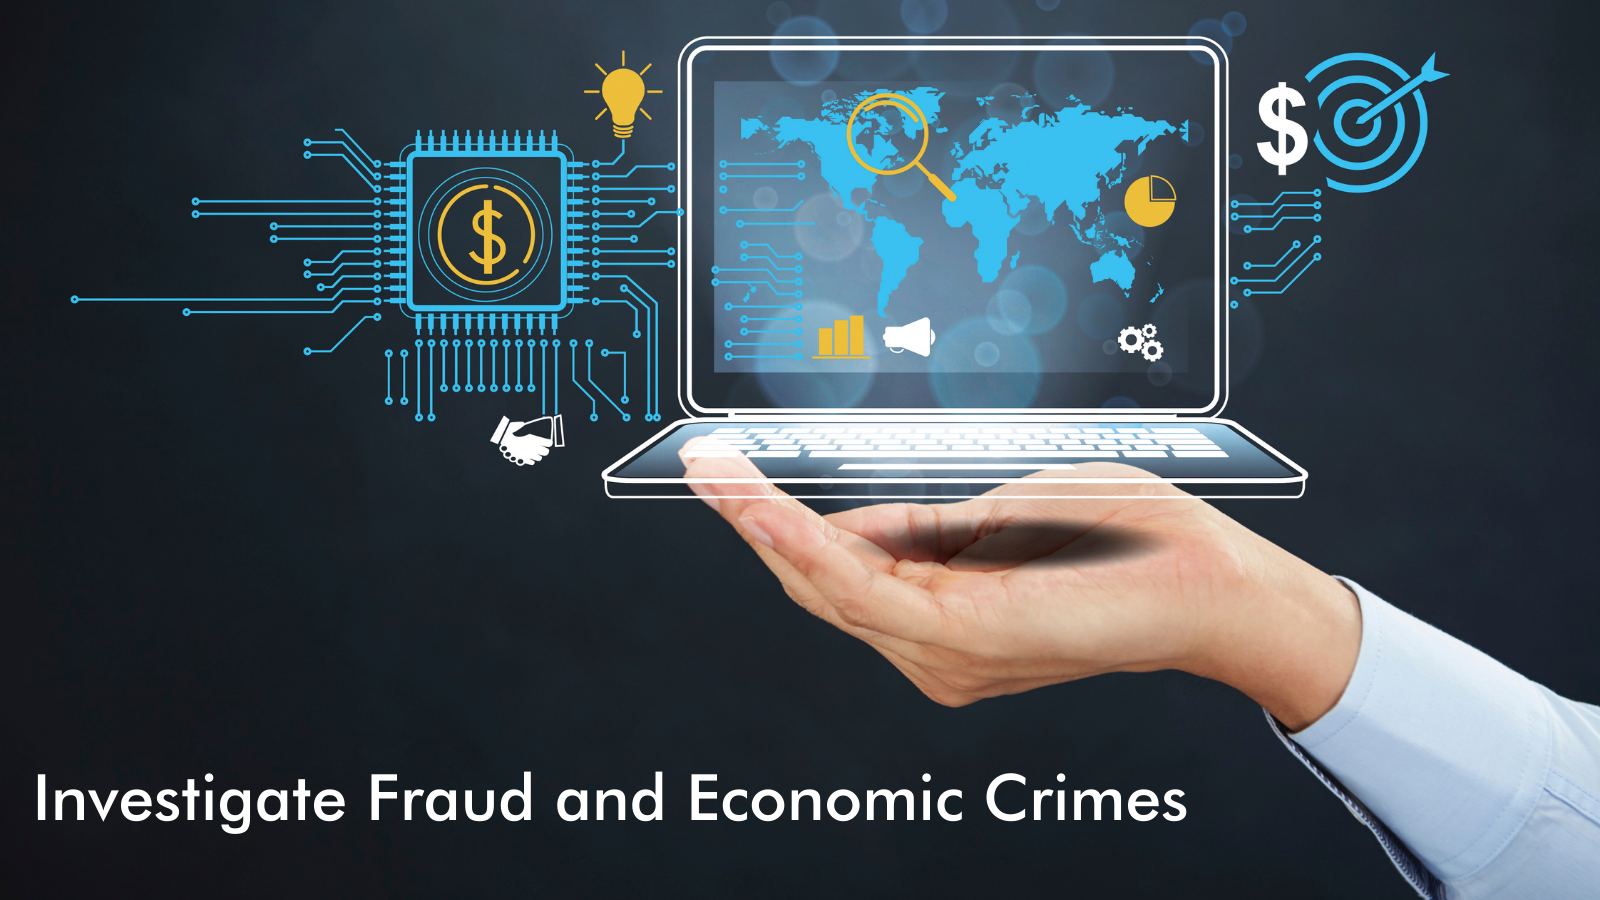 The Need for Digital Forensics Tools for Financial Crimes